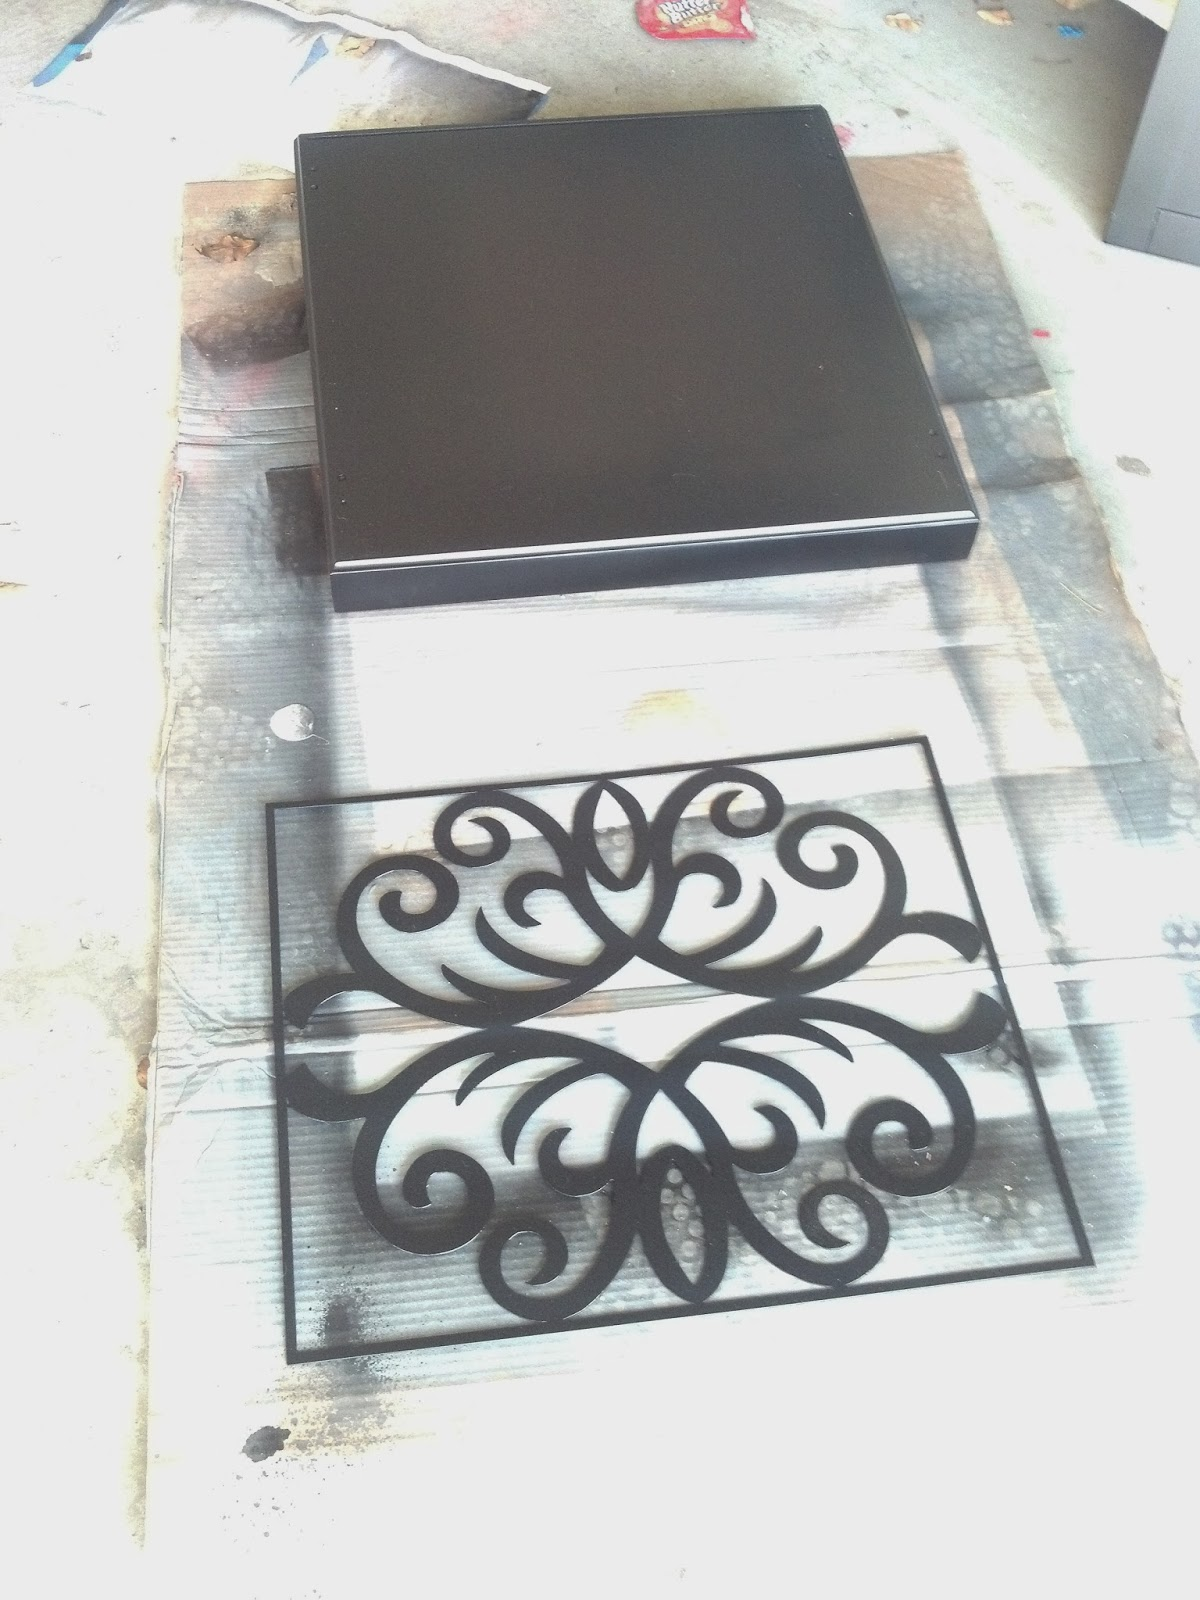 dog crate, dog, dog kennel, dog grate end table, dog kennel end table, end table, side table, dog crate side table, dog crate table, black and white, black, white, lamp, boston terrior